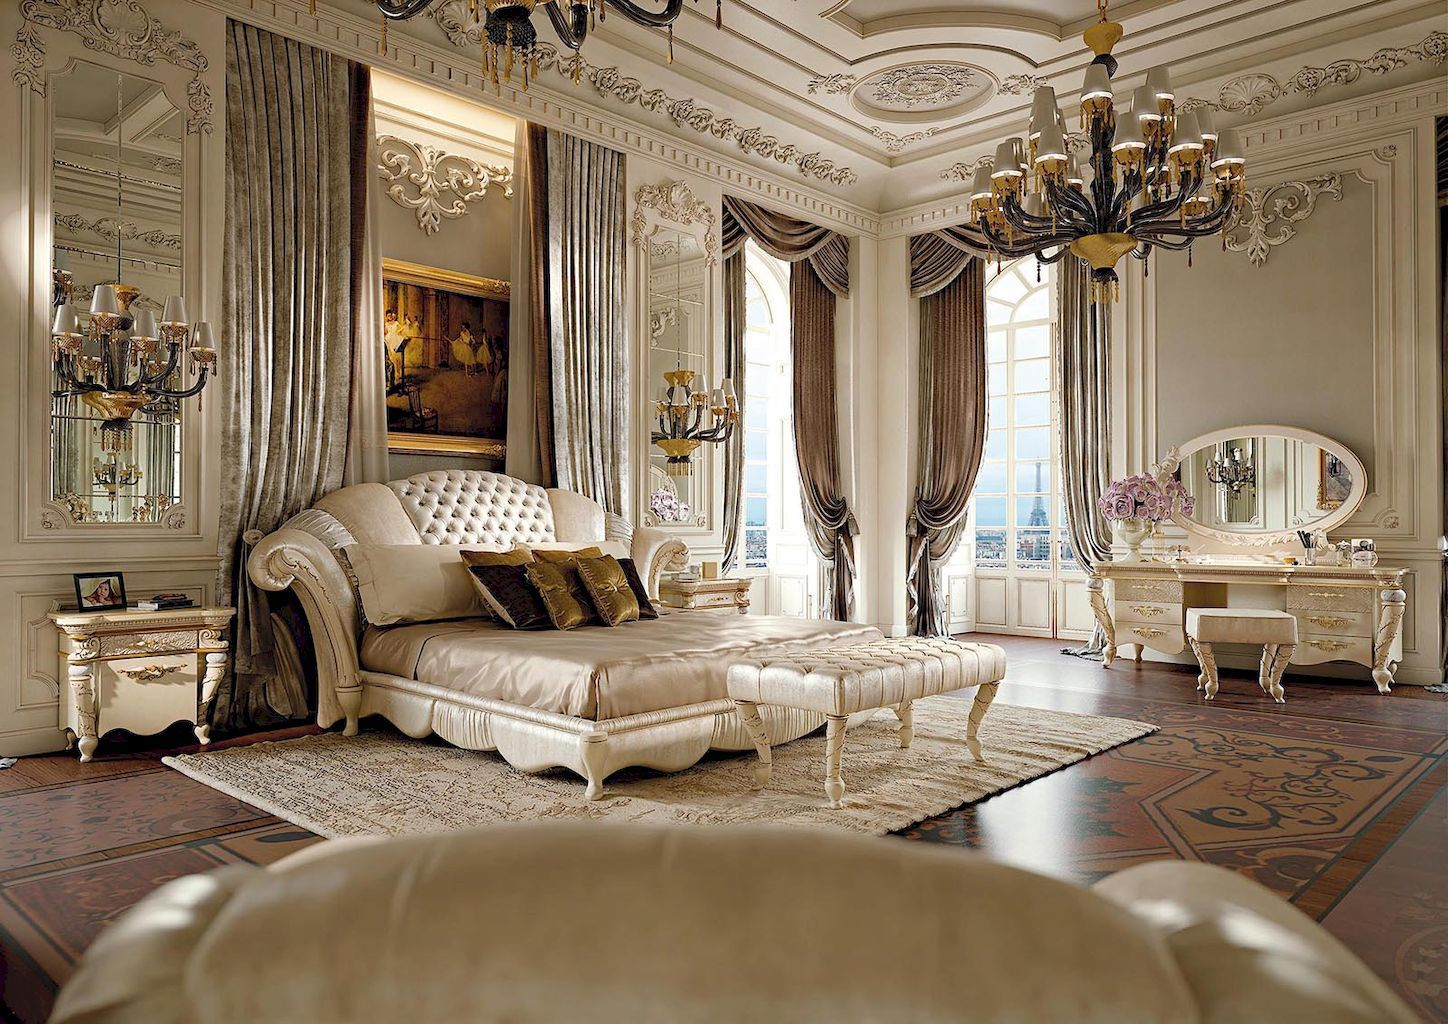 Classy & Elegant Traditional Bedroom Designs That Will Fit